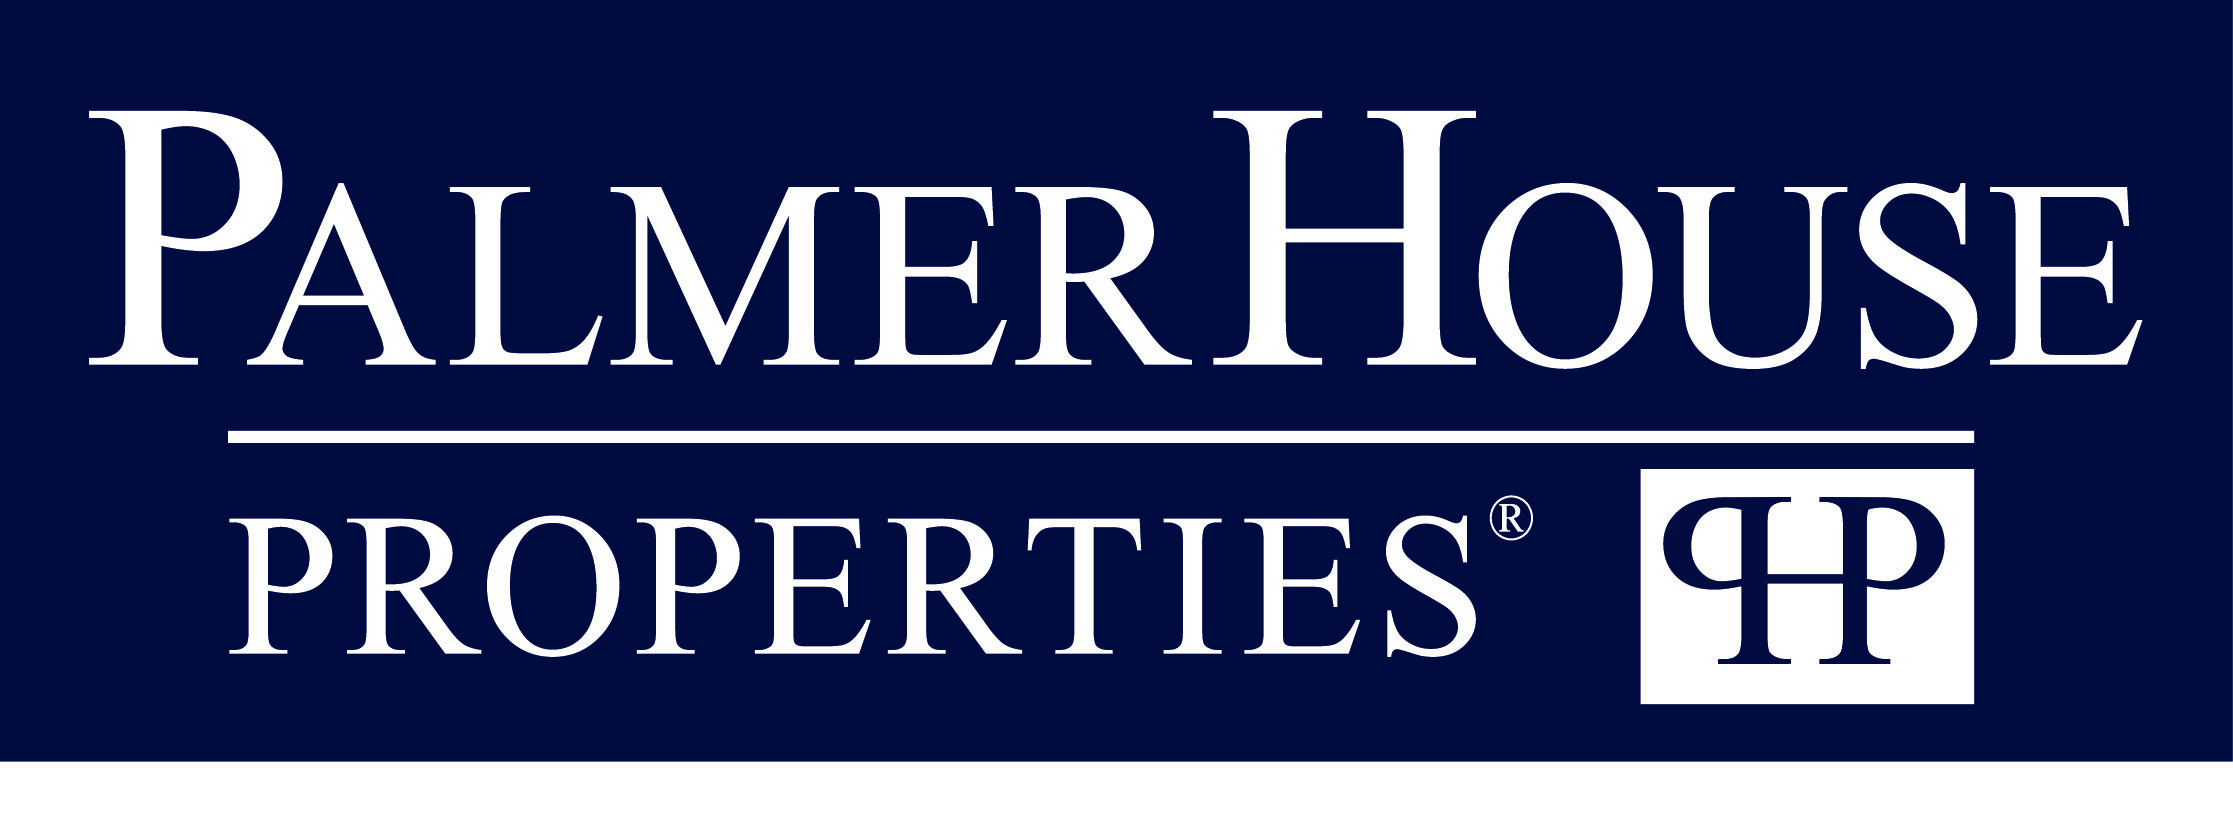 PalmerHouse Logo with PHP.jpg